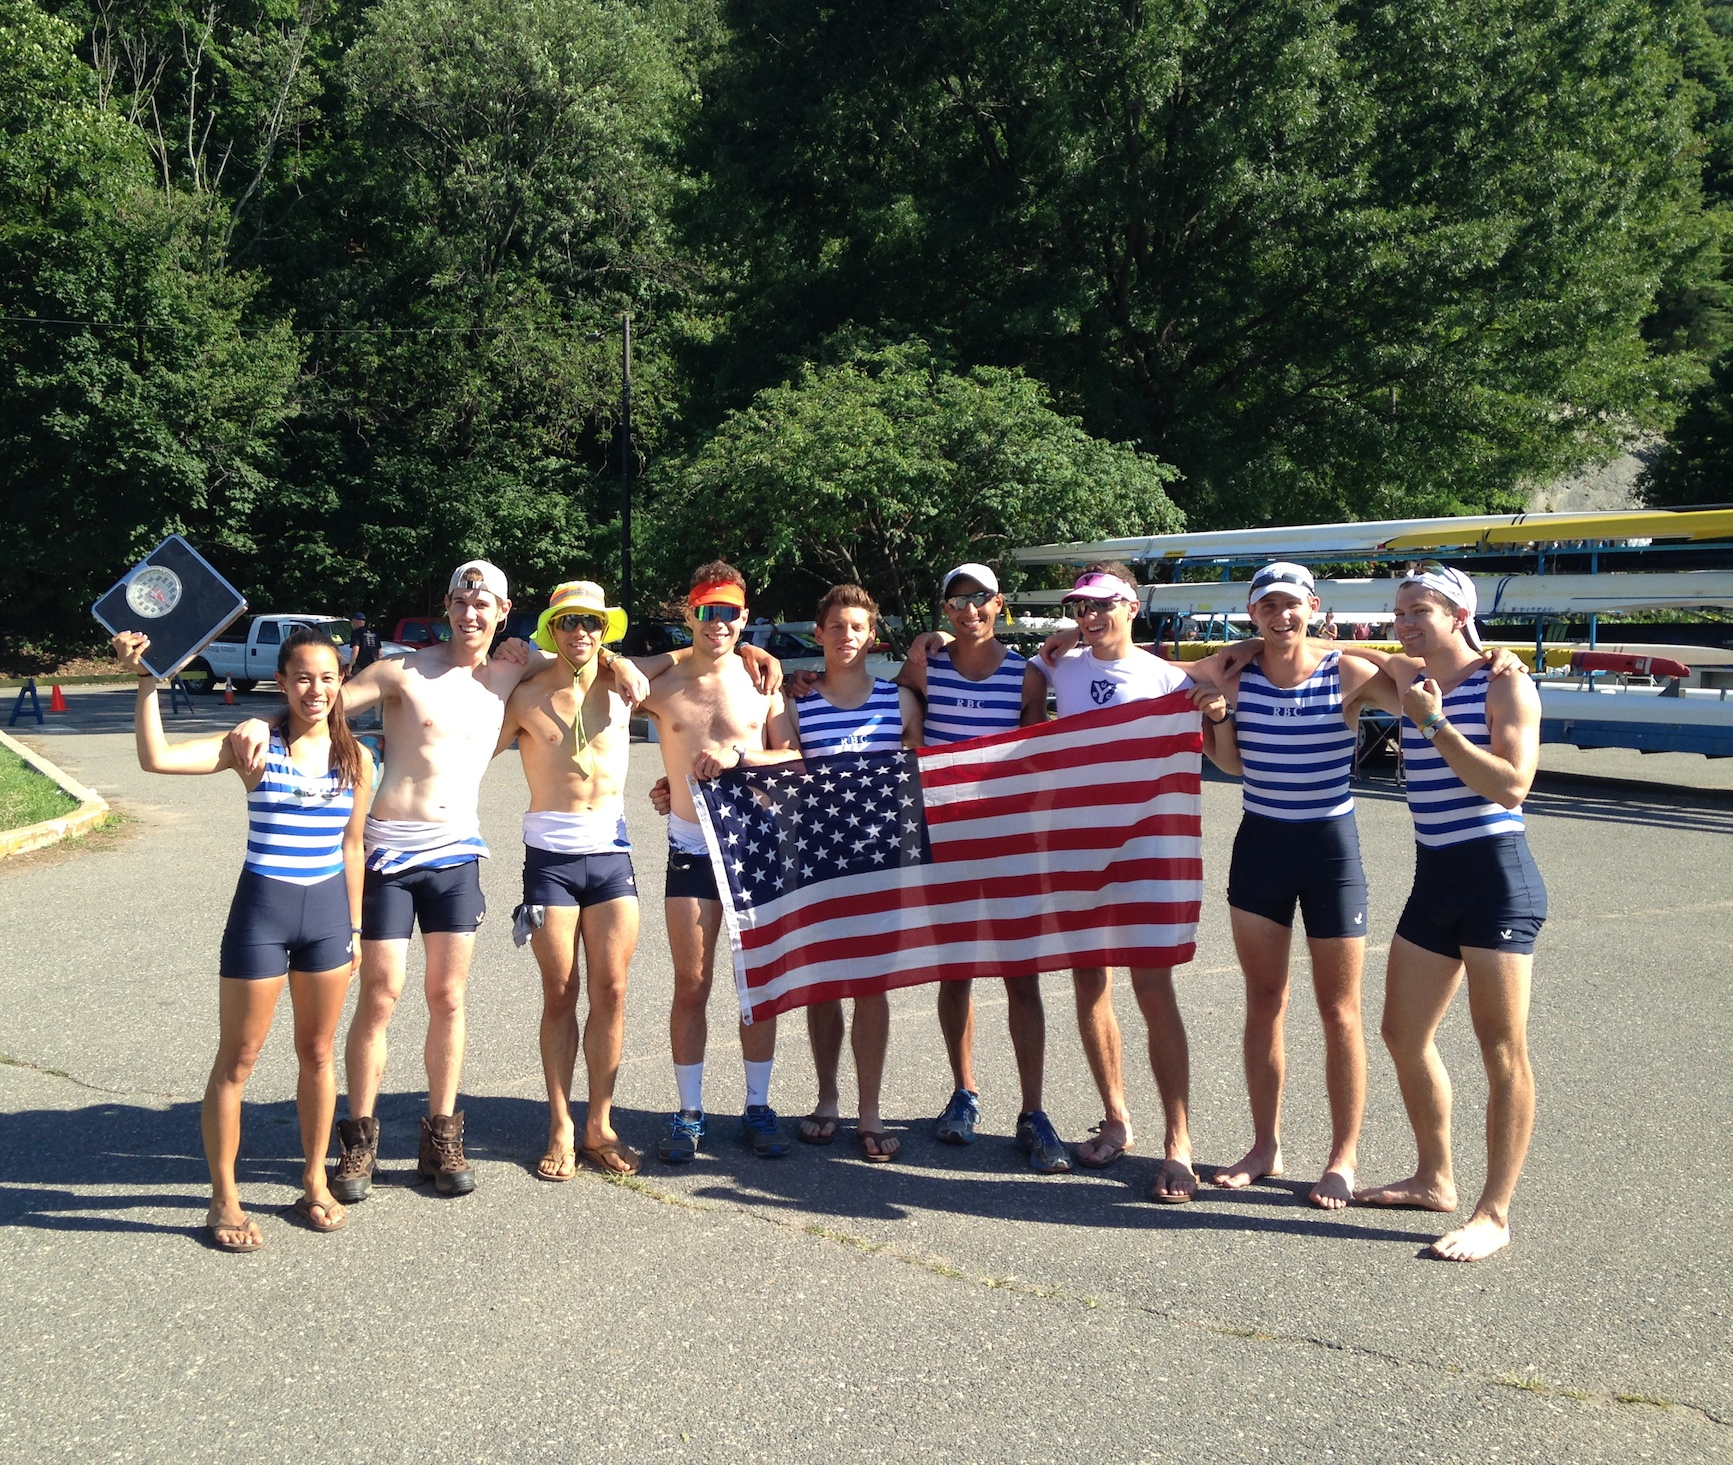 Riverside Men's Lightweight 8+